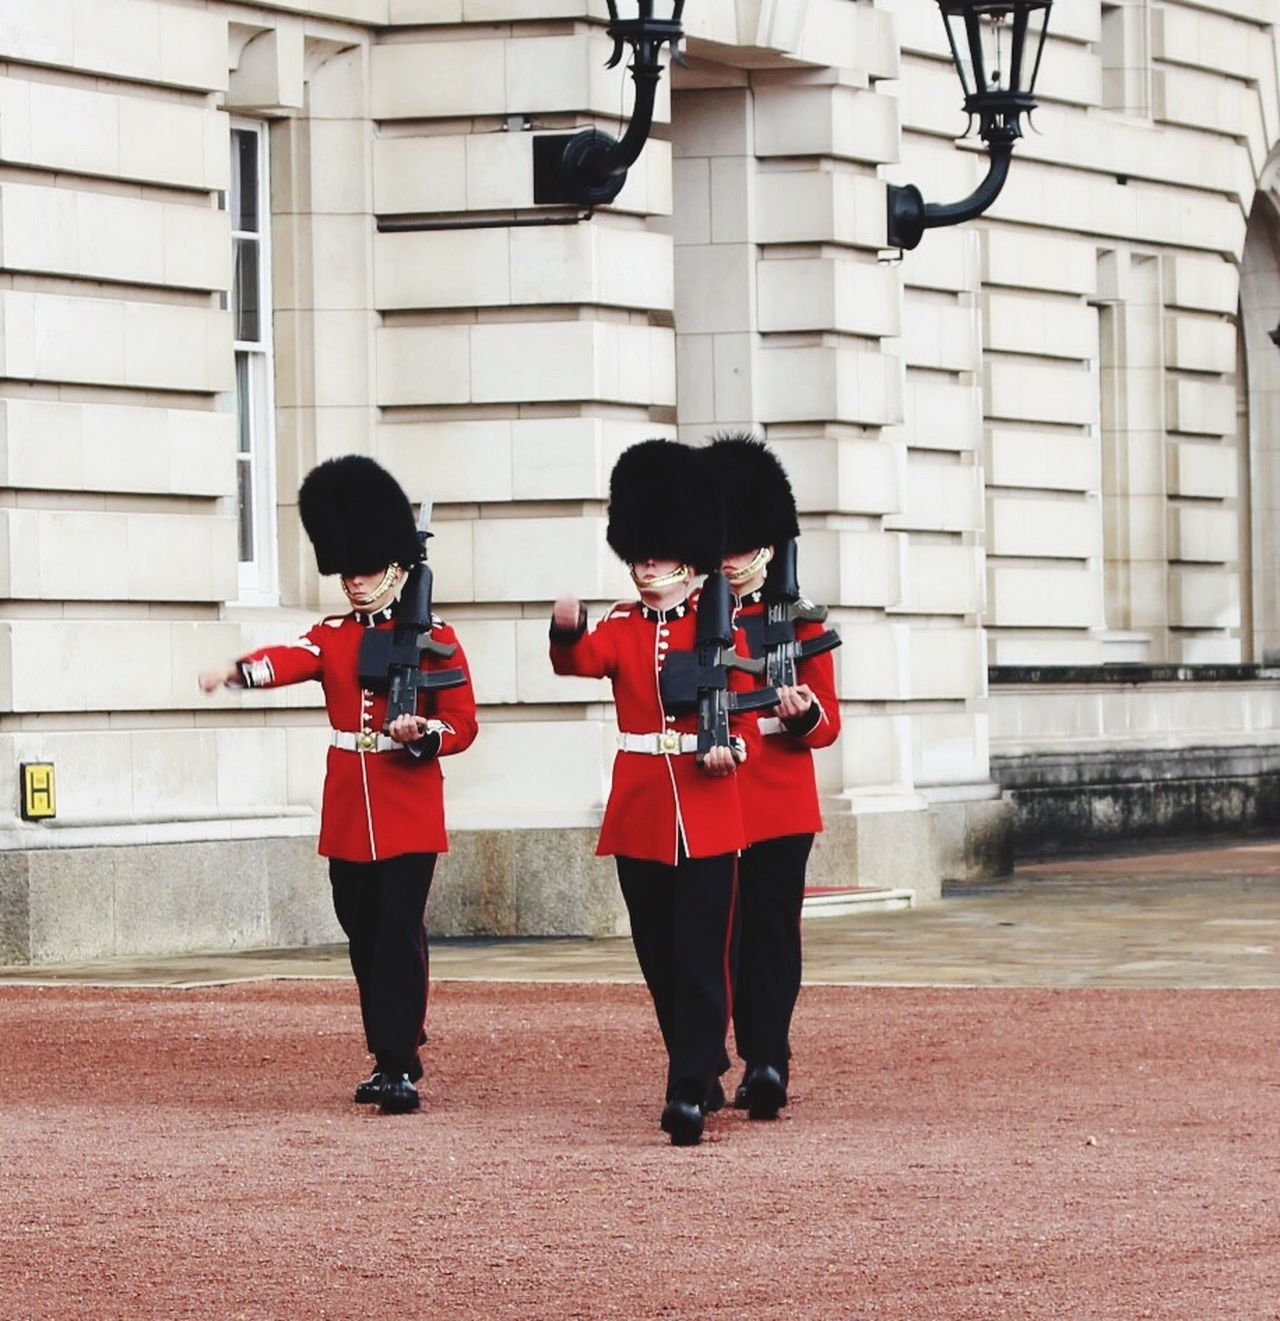 Original Experiences Architecture Building Full Length Soilder Guard Outdoors Buckingham Palace Day Parade Feel The Journey Tourist Attraction  Battle Of The Cities London Lifestyle